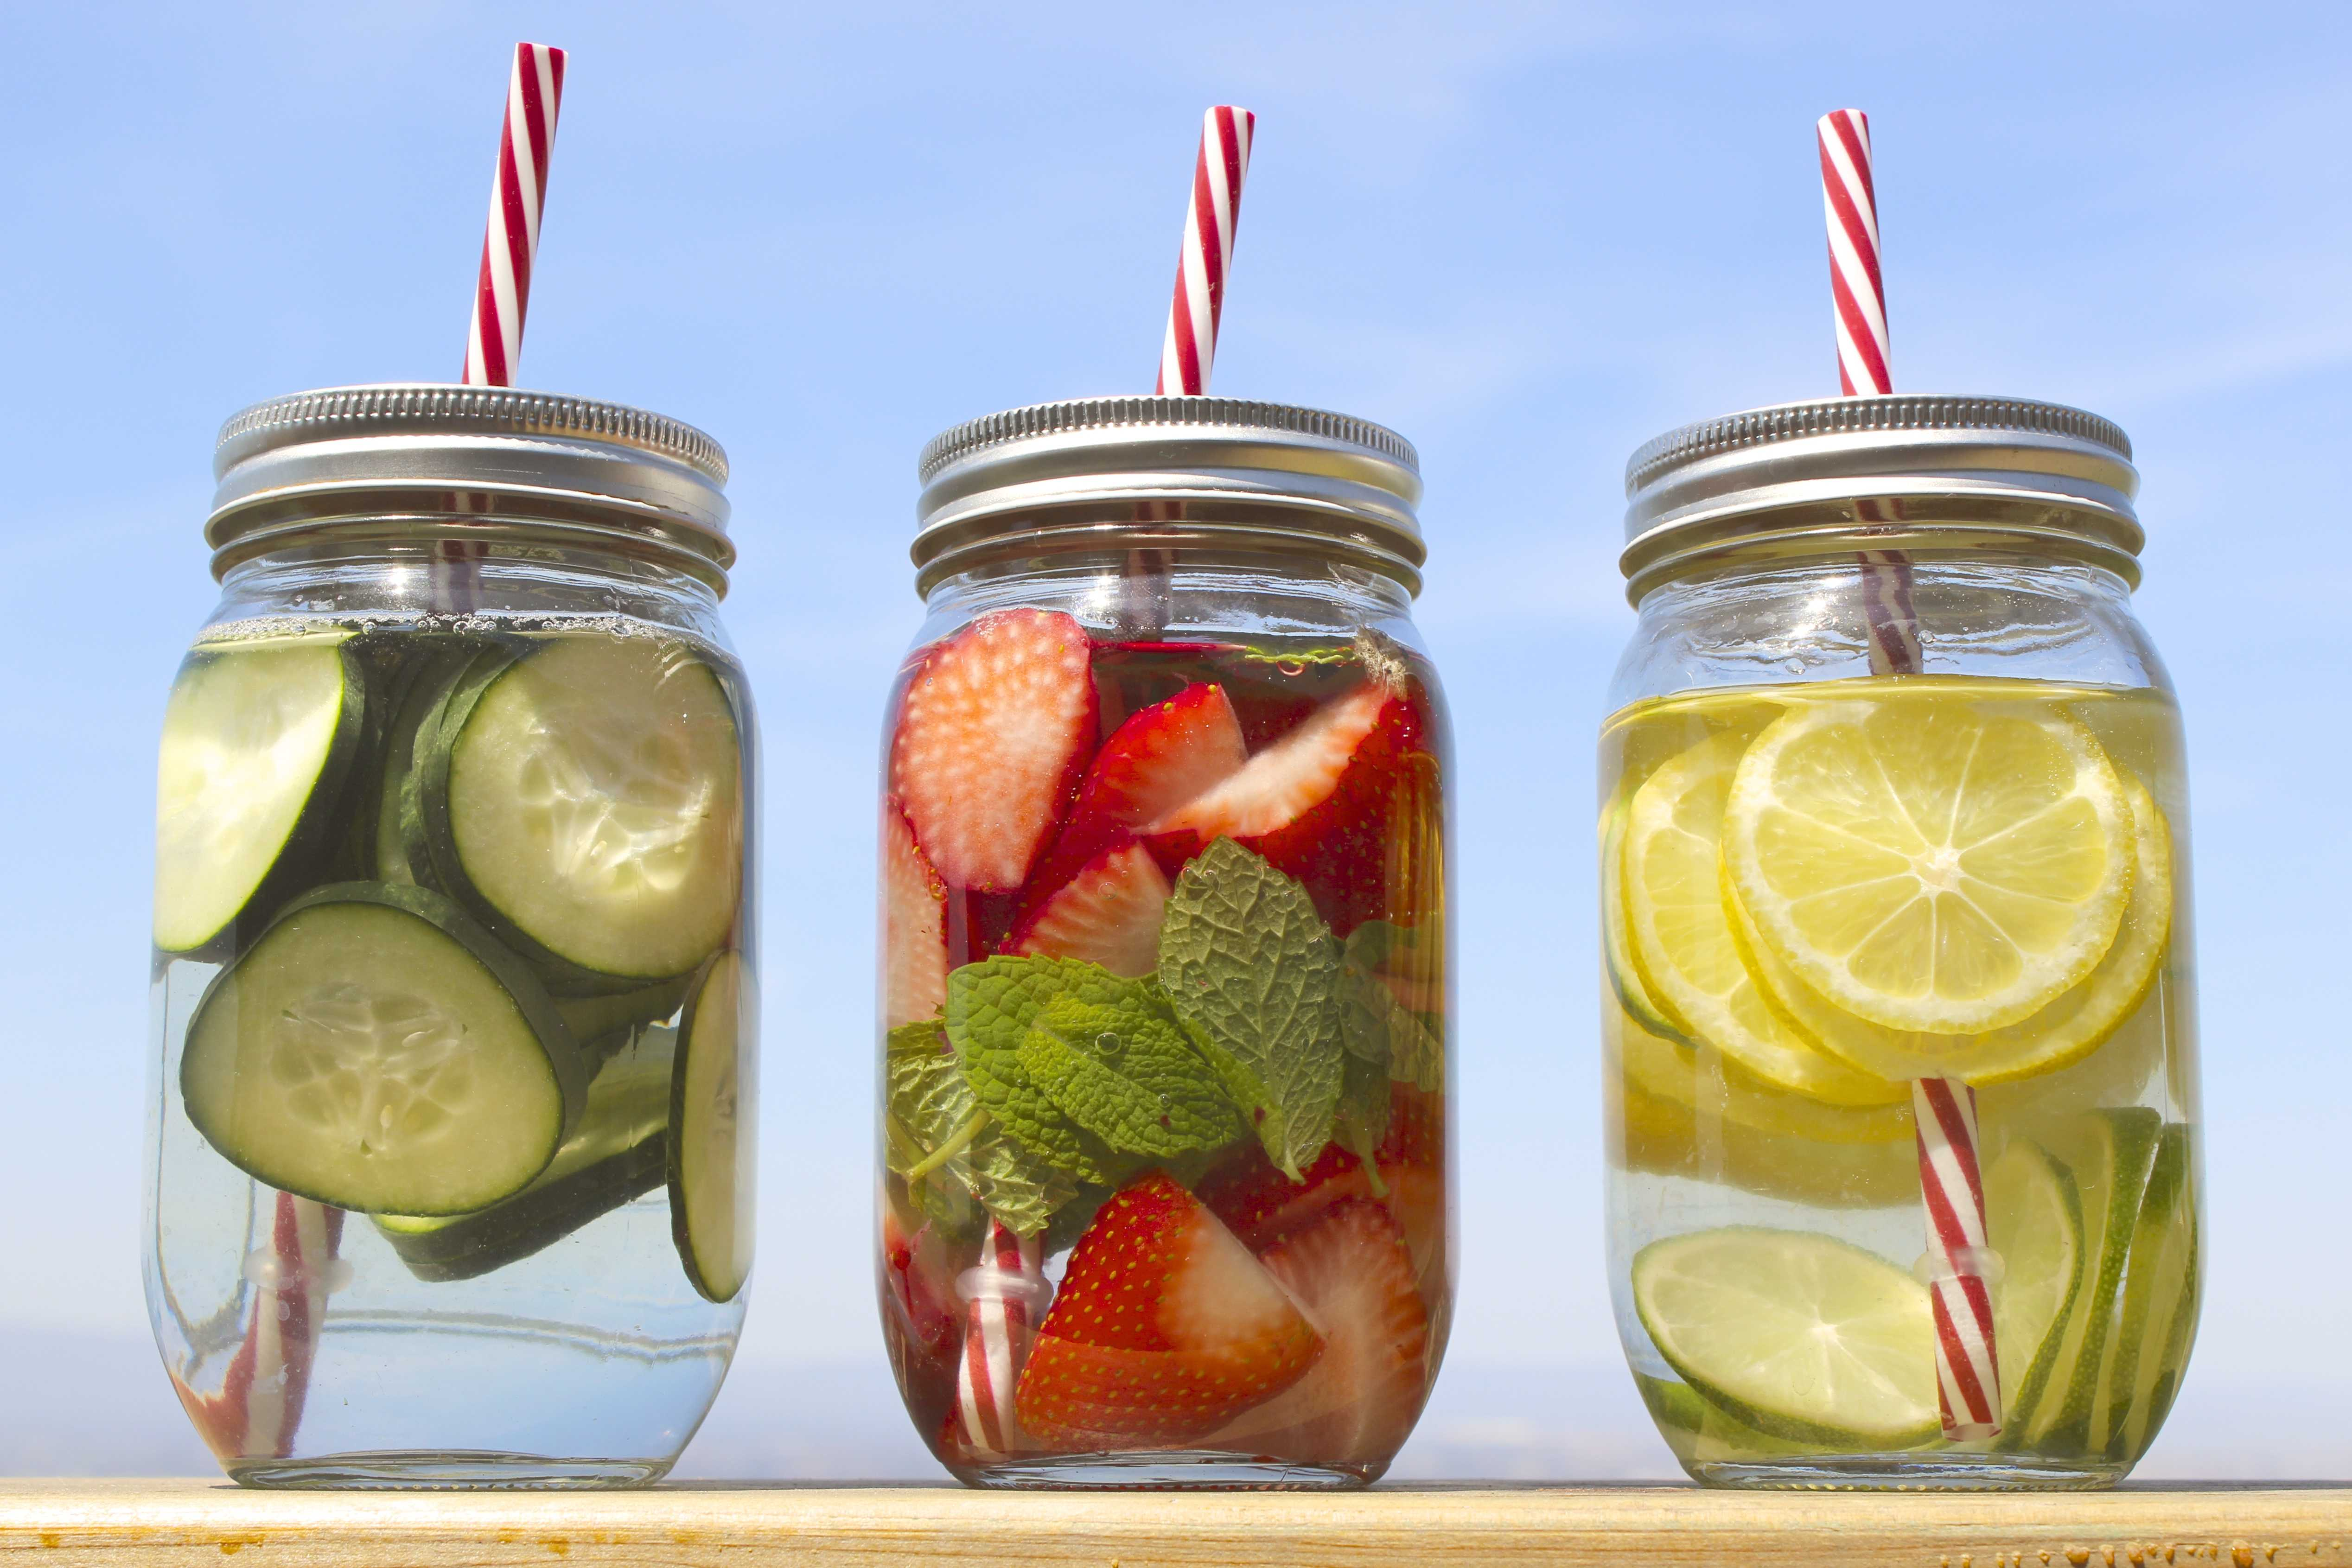 detox-water Top Ten Detox Water Recipes for Rapid Weight Loss